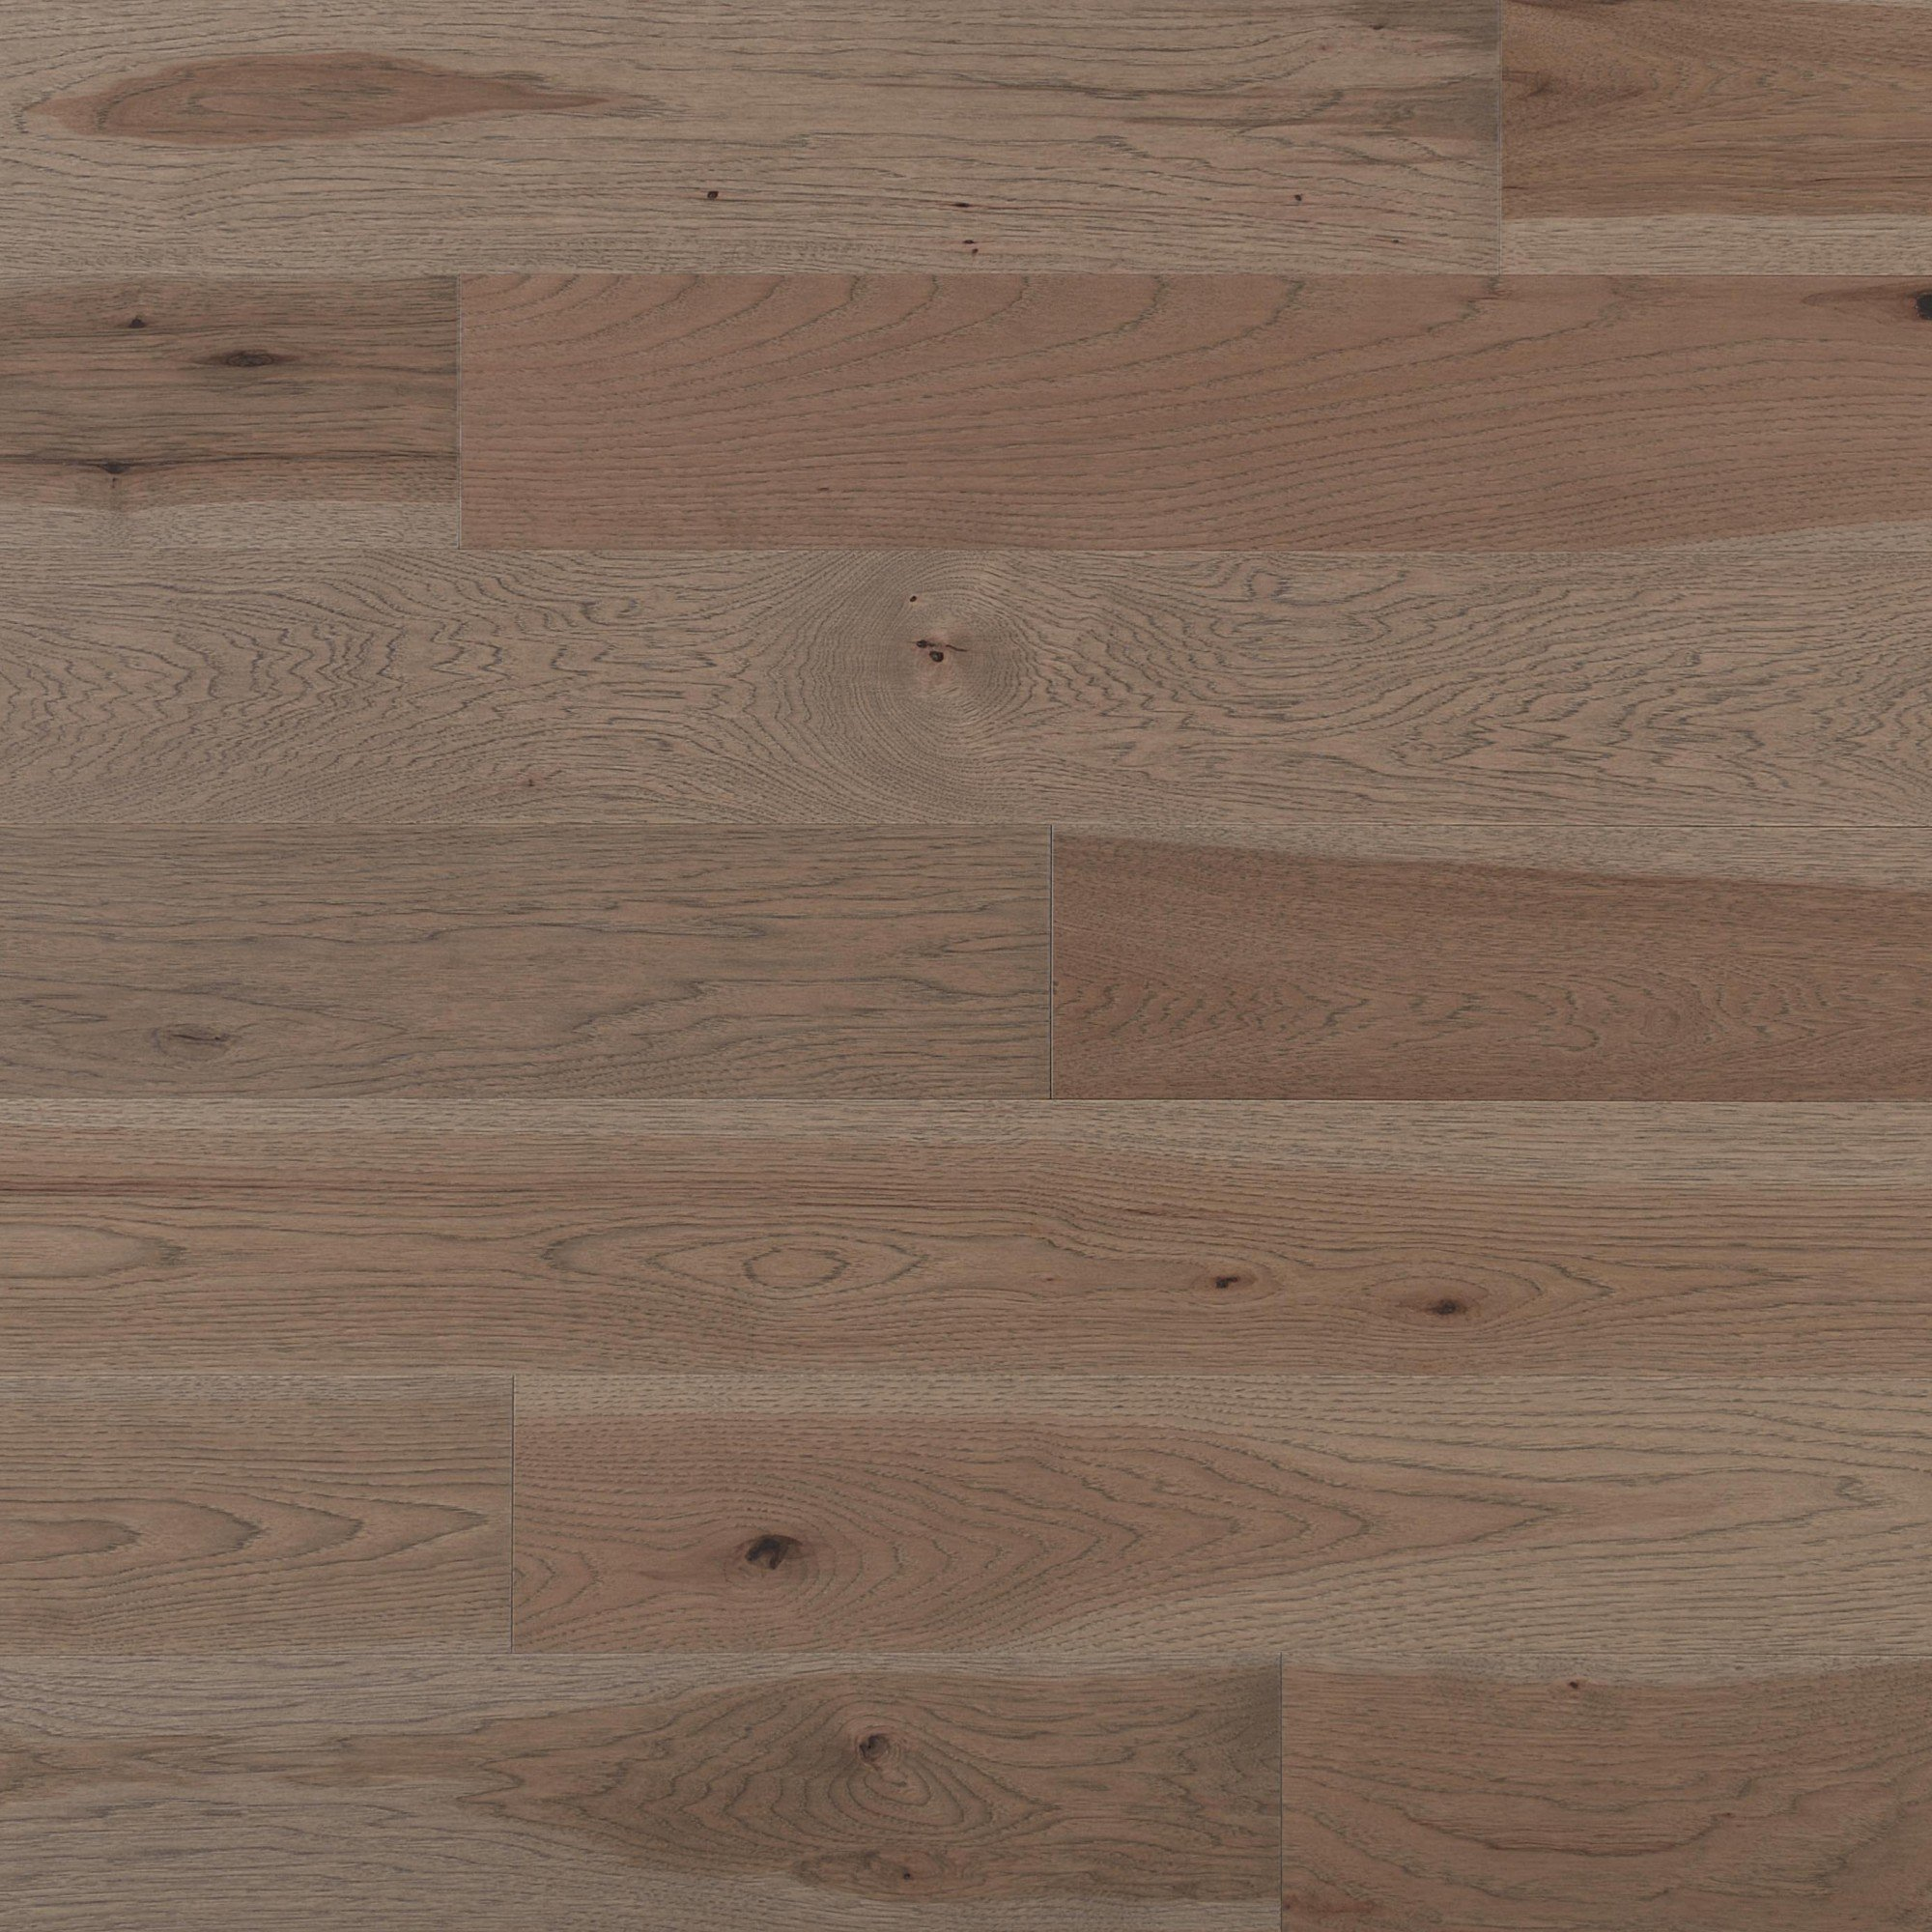 Hickory Greystone Caractère Lisse - Image plancher